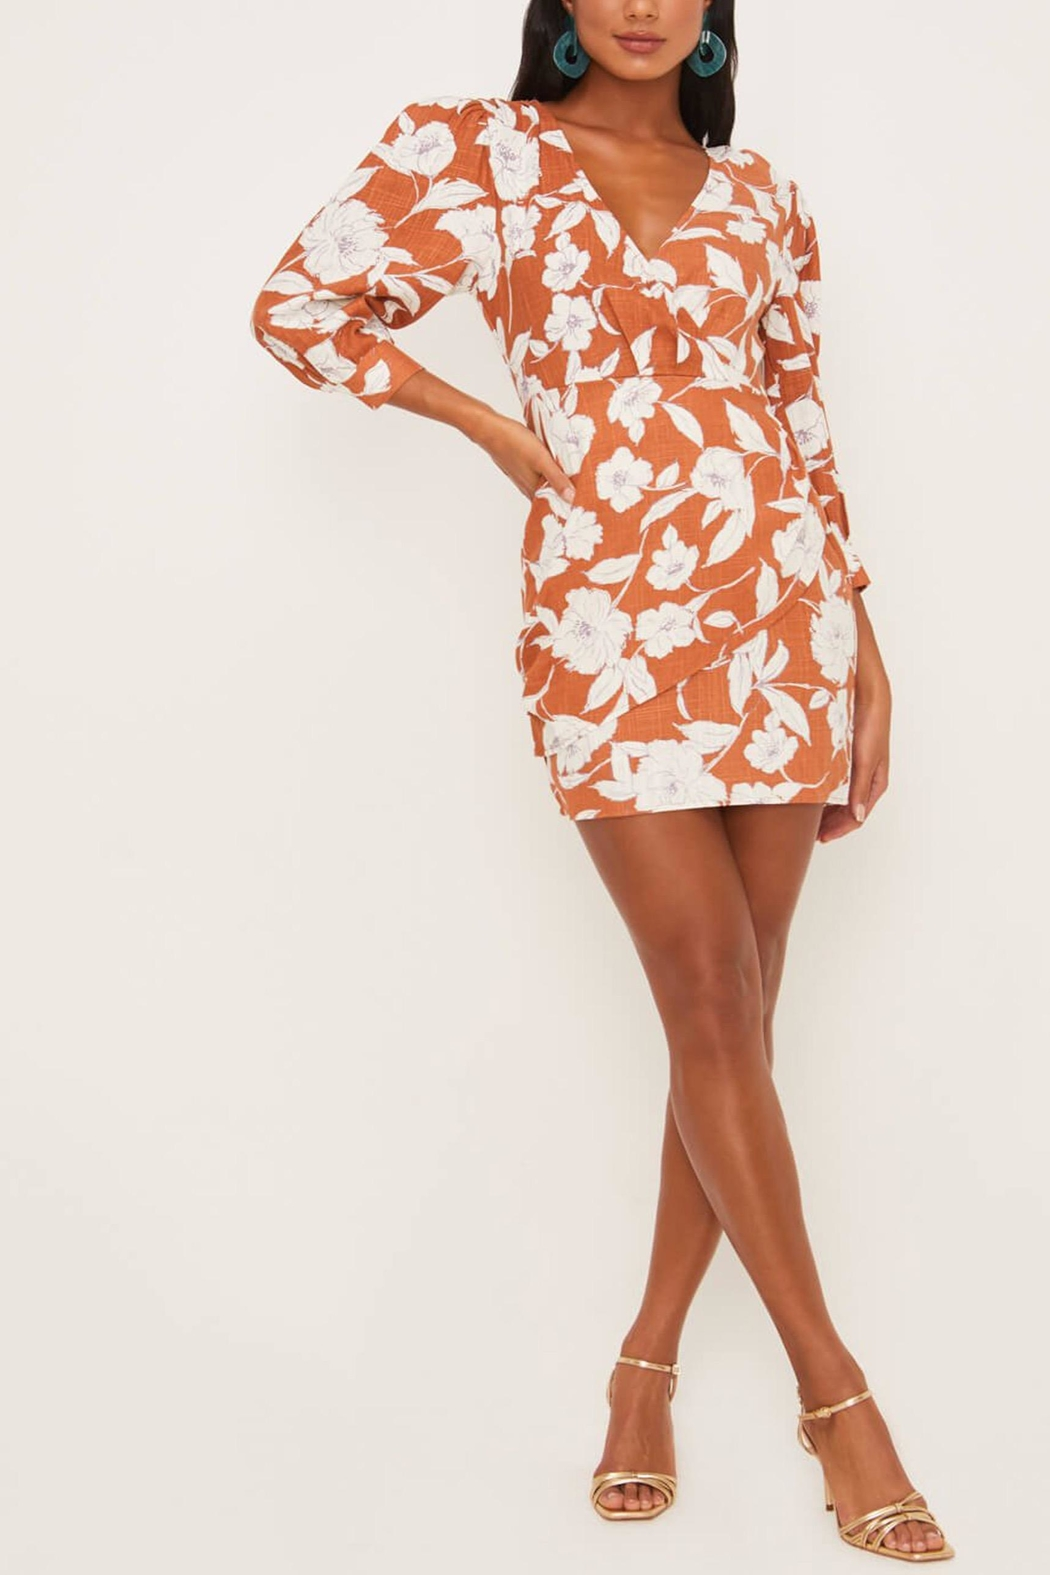 Lush Clothing  Floral Surplice Dress - Front Full Image